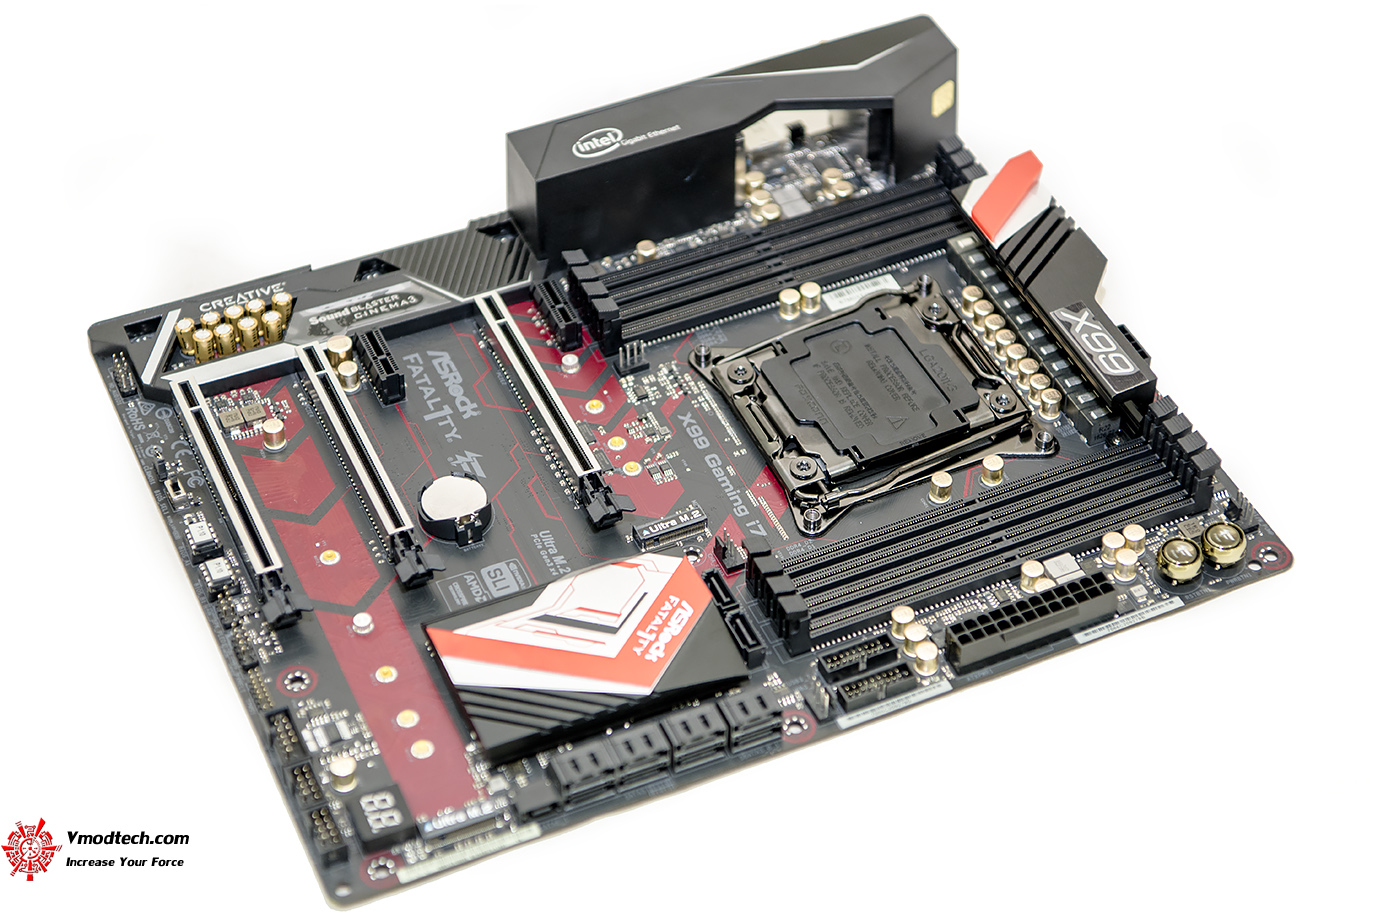 dsc 1953 ASRock Fatal1ty X99 Professional Gaming i7 Motherboard Review